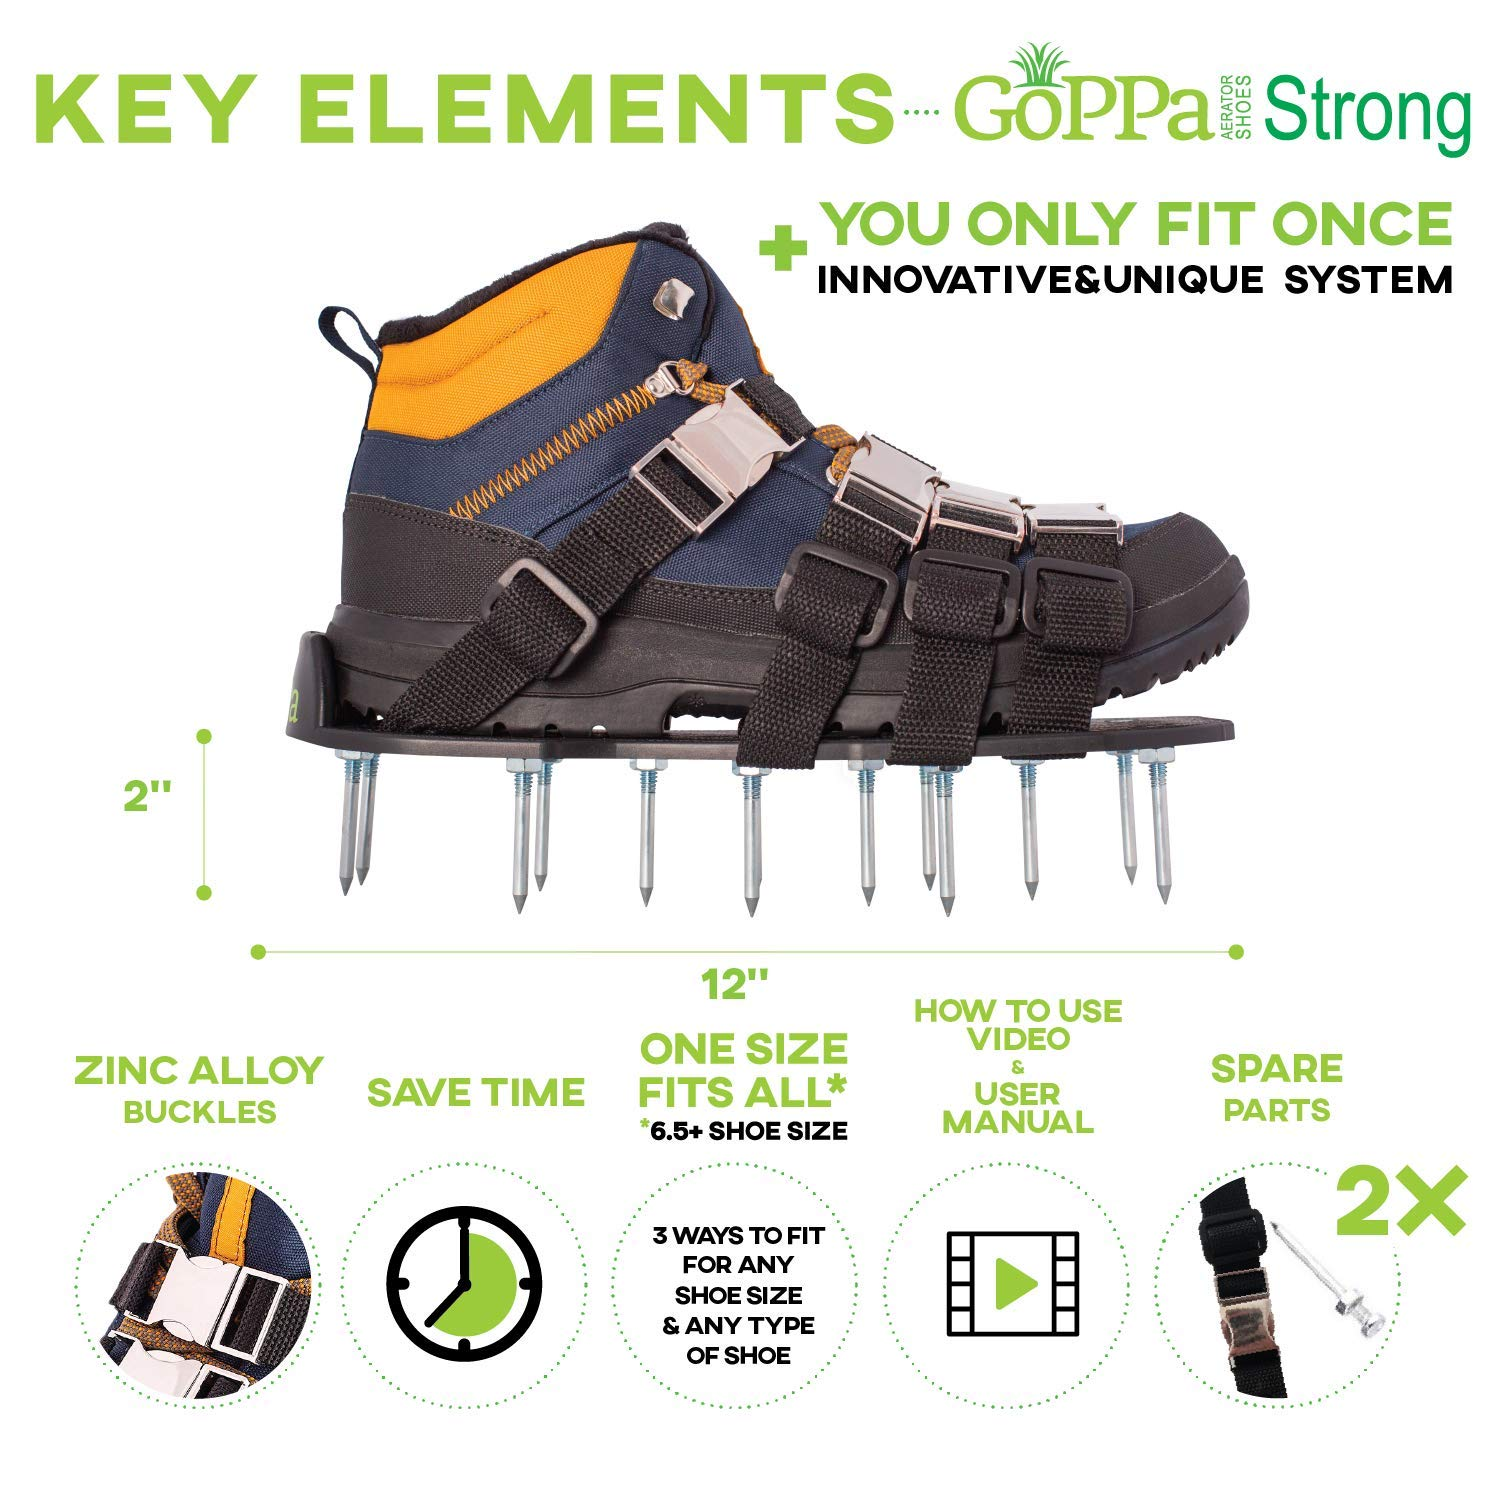 GoPPa Lawn Aerator Shoes – Heavy Duty Lawn Aerator Sandal, You only FIT Once. Ready for aerating Your Yard, Lawn, Roots & Grass – Strong Design by GoPPa (Image #6)